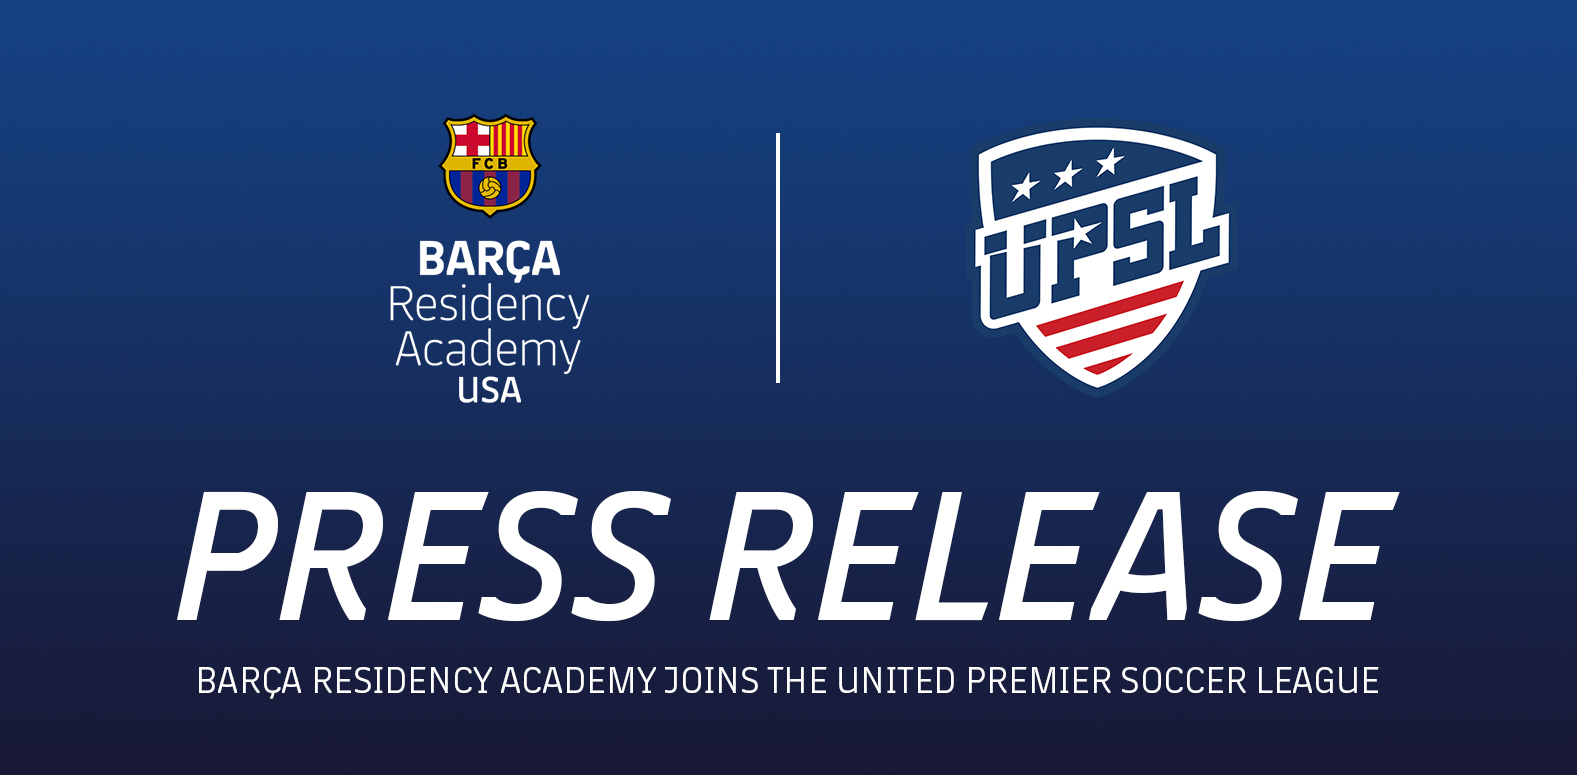 Barça Residency Academy Joins the UPSL